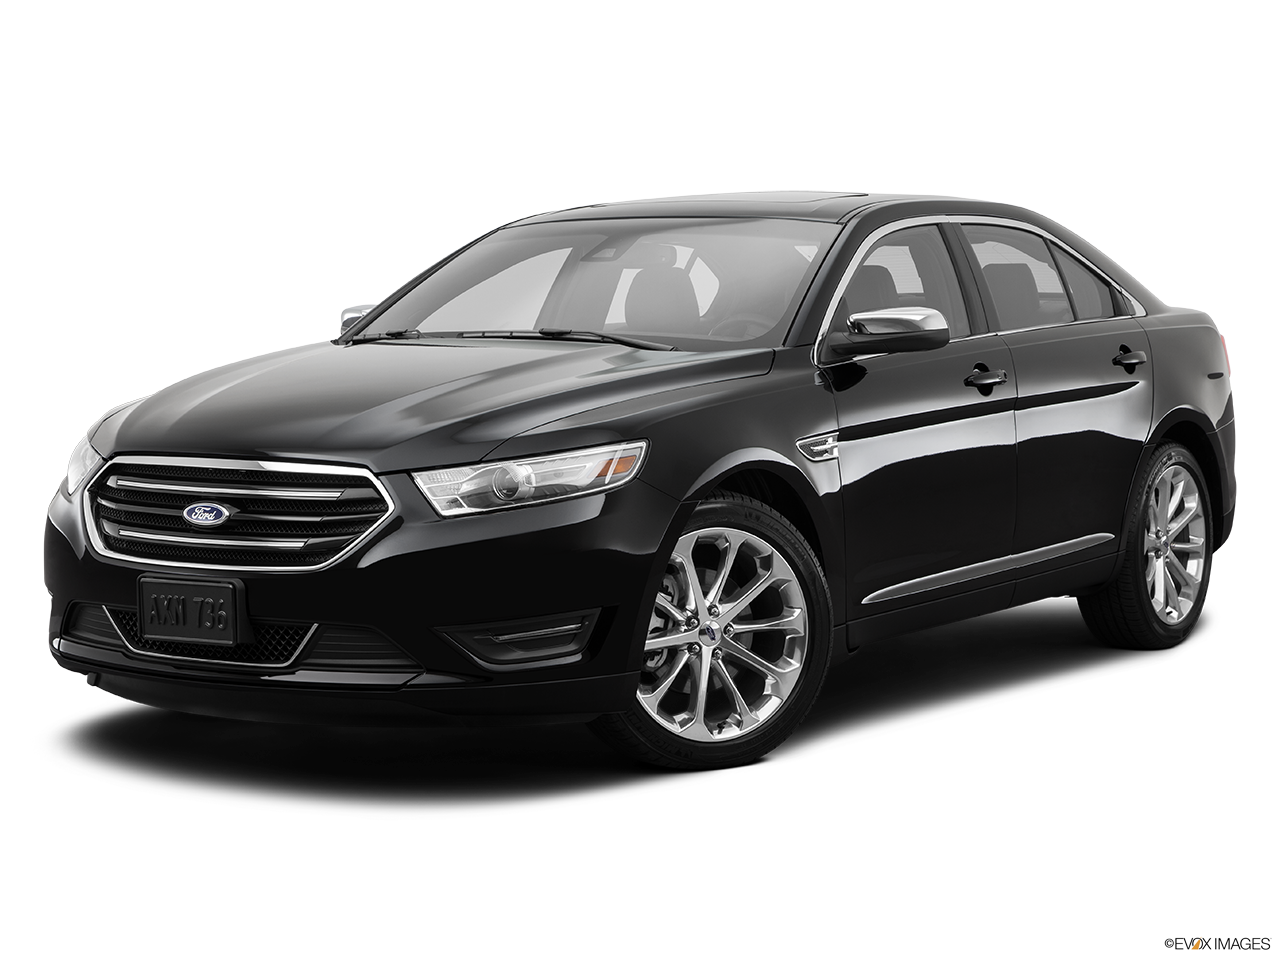 2016 ford taurus dealer serving longview all star ford kilgore. Black Bedroom Furniture Sets. Home Design Ideas